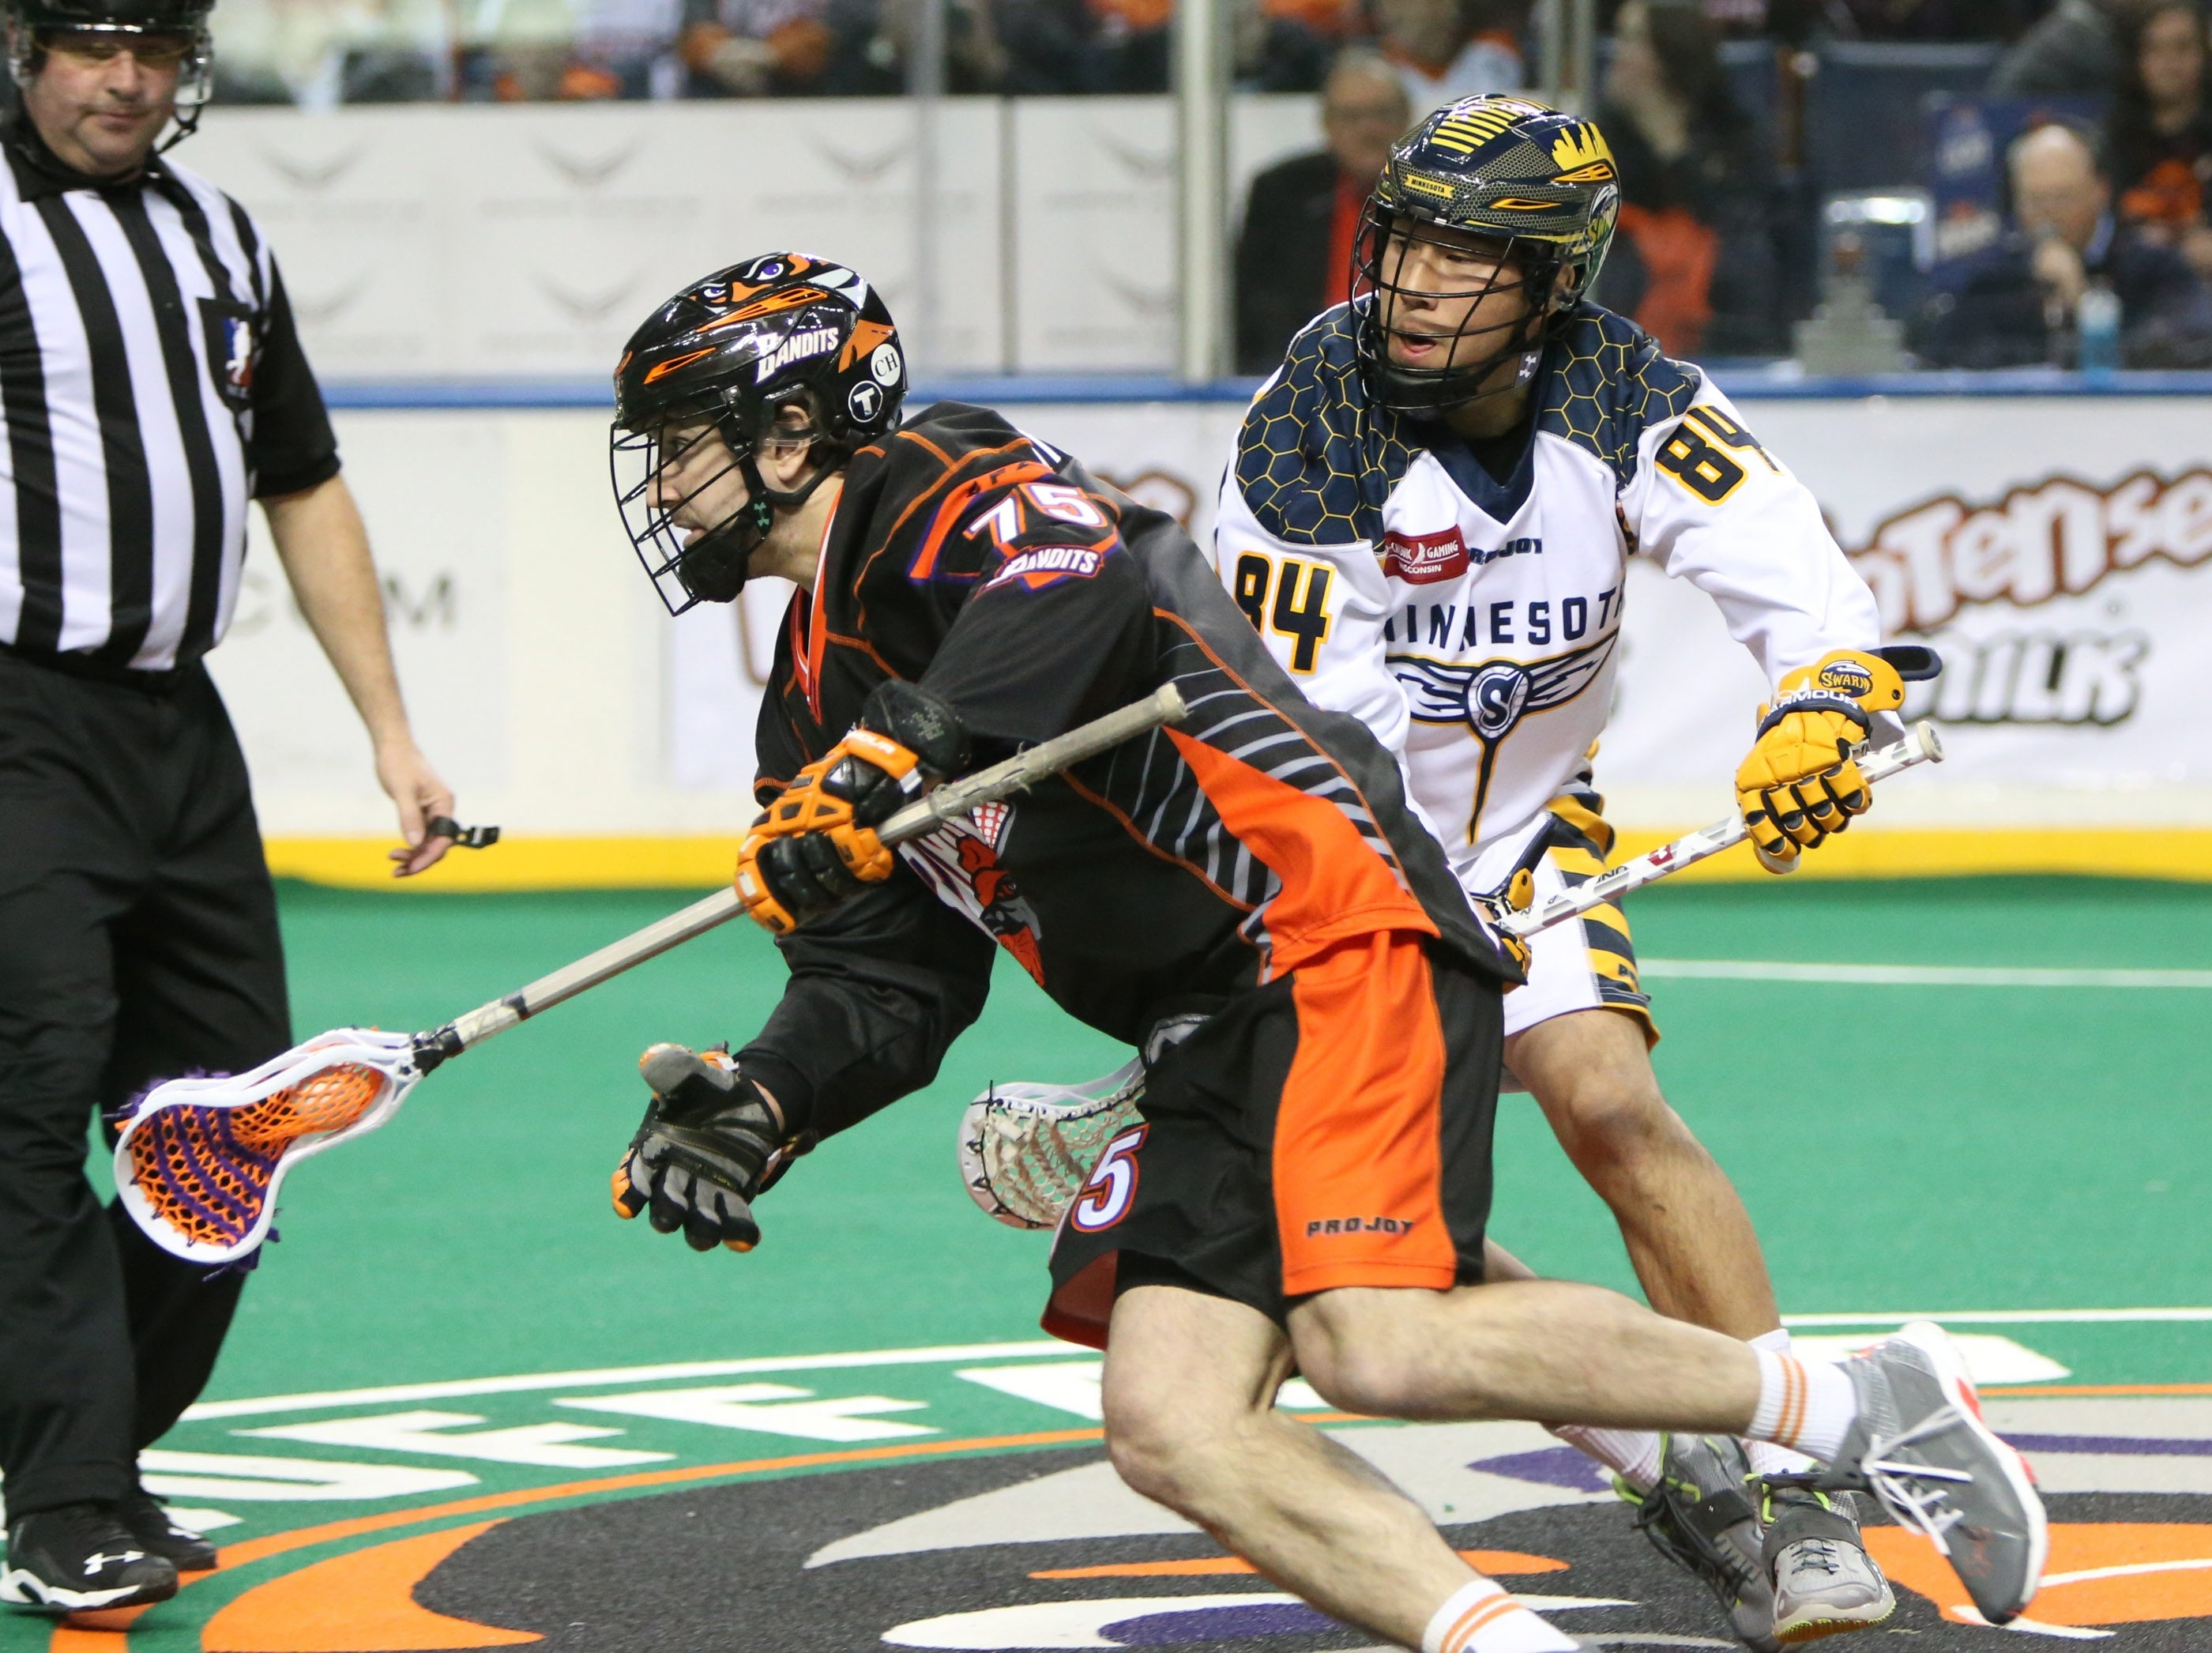 Jay Thorimbert of the Bandits powers past Minnesota's Corbyn Tao in the second quarter at First Niagara Center.